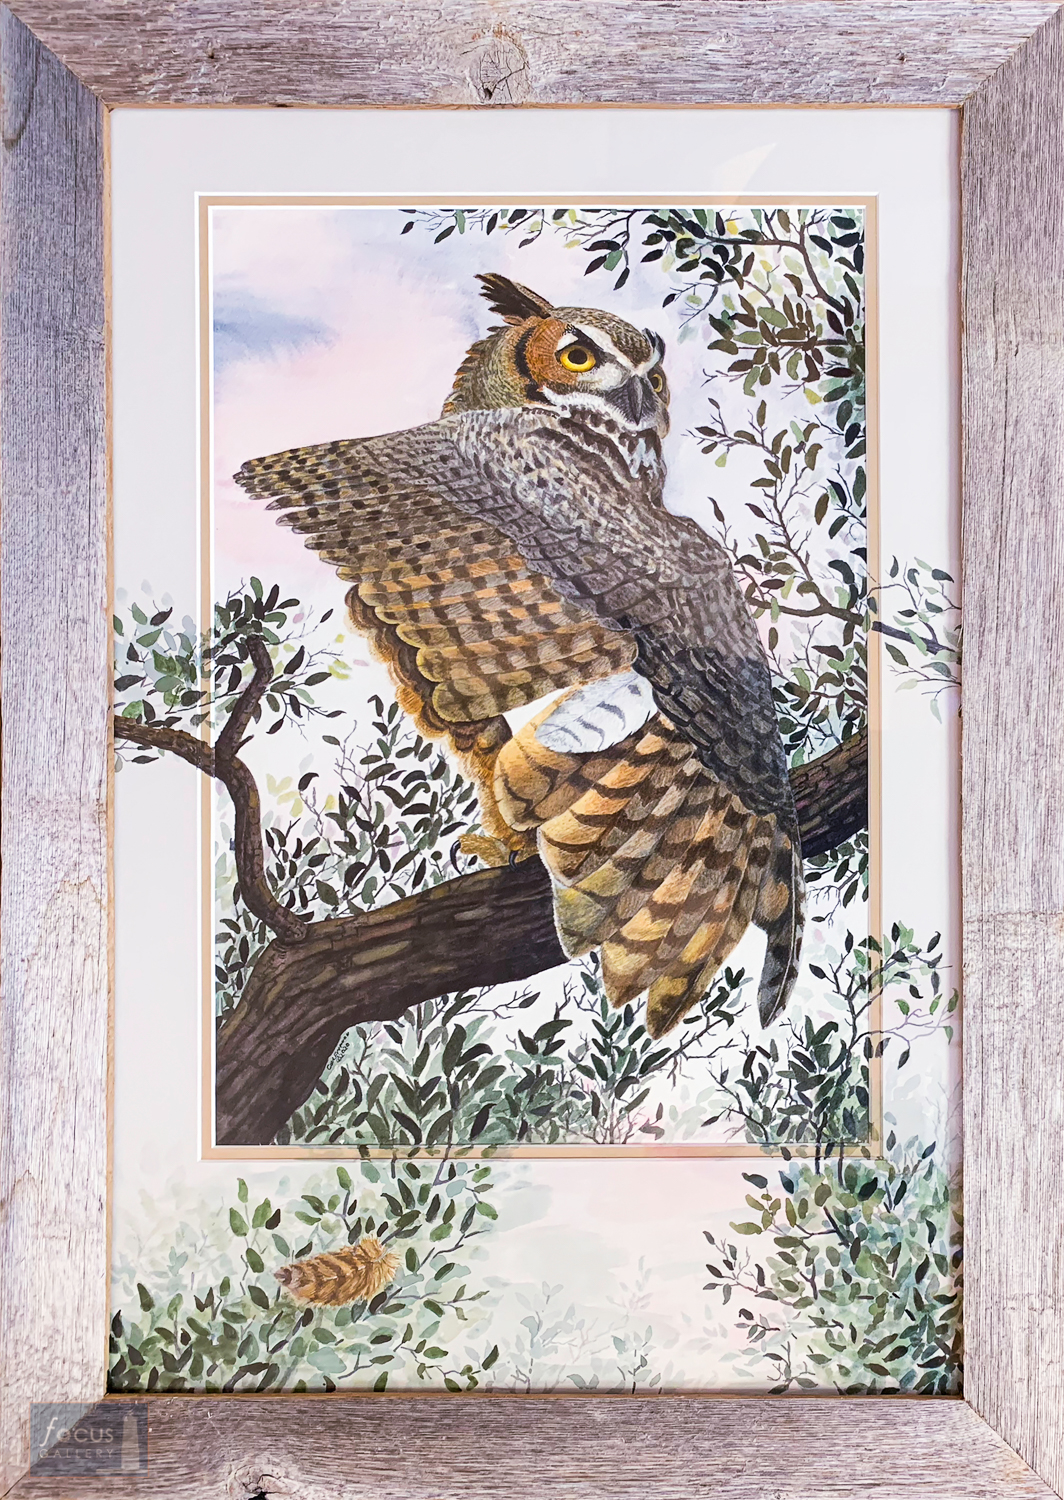 Original watercolor painting ofa Great Horned Owl bird stretching its wing with painting continued onto mat board.